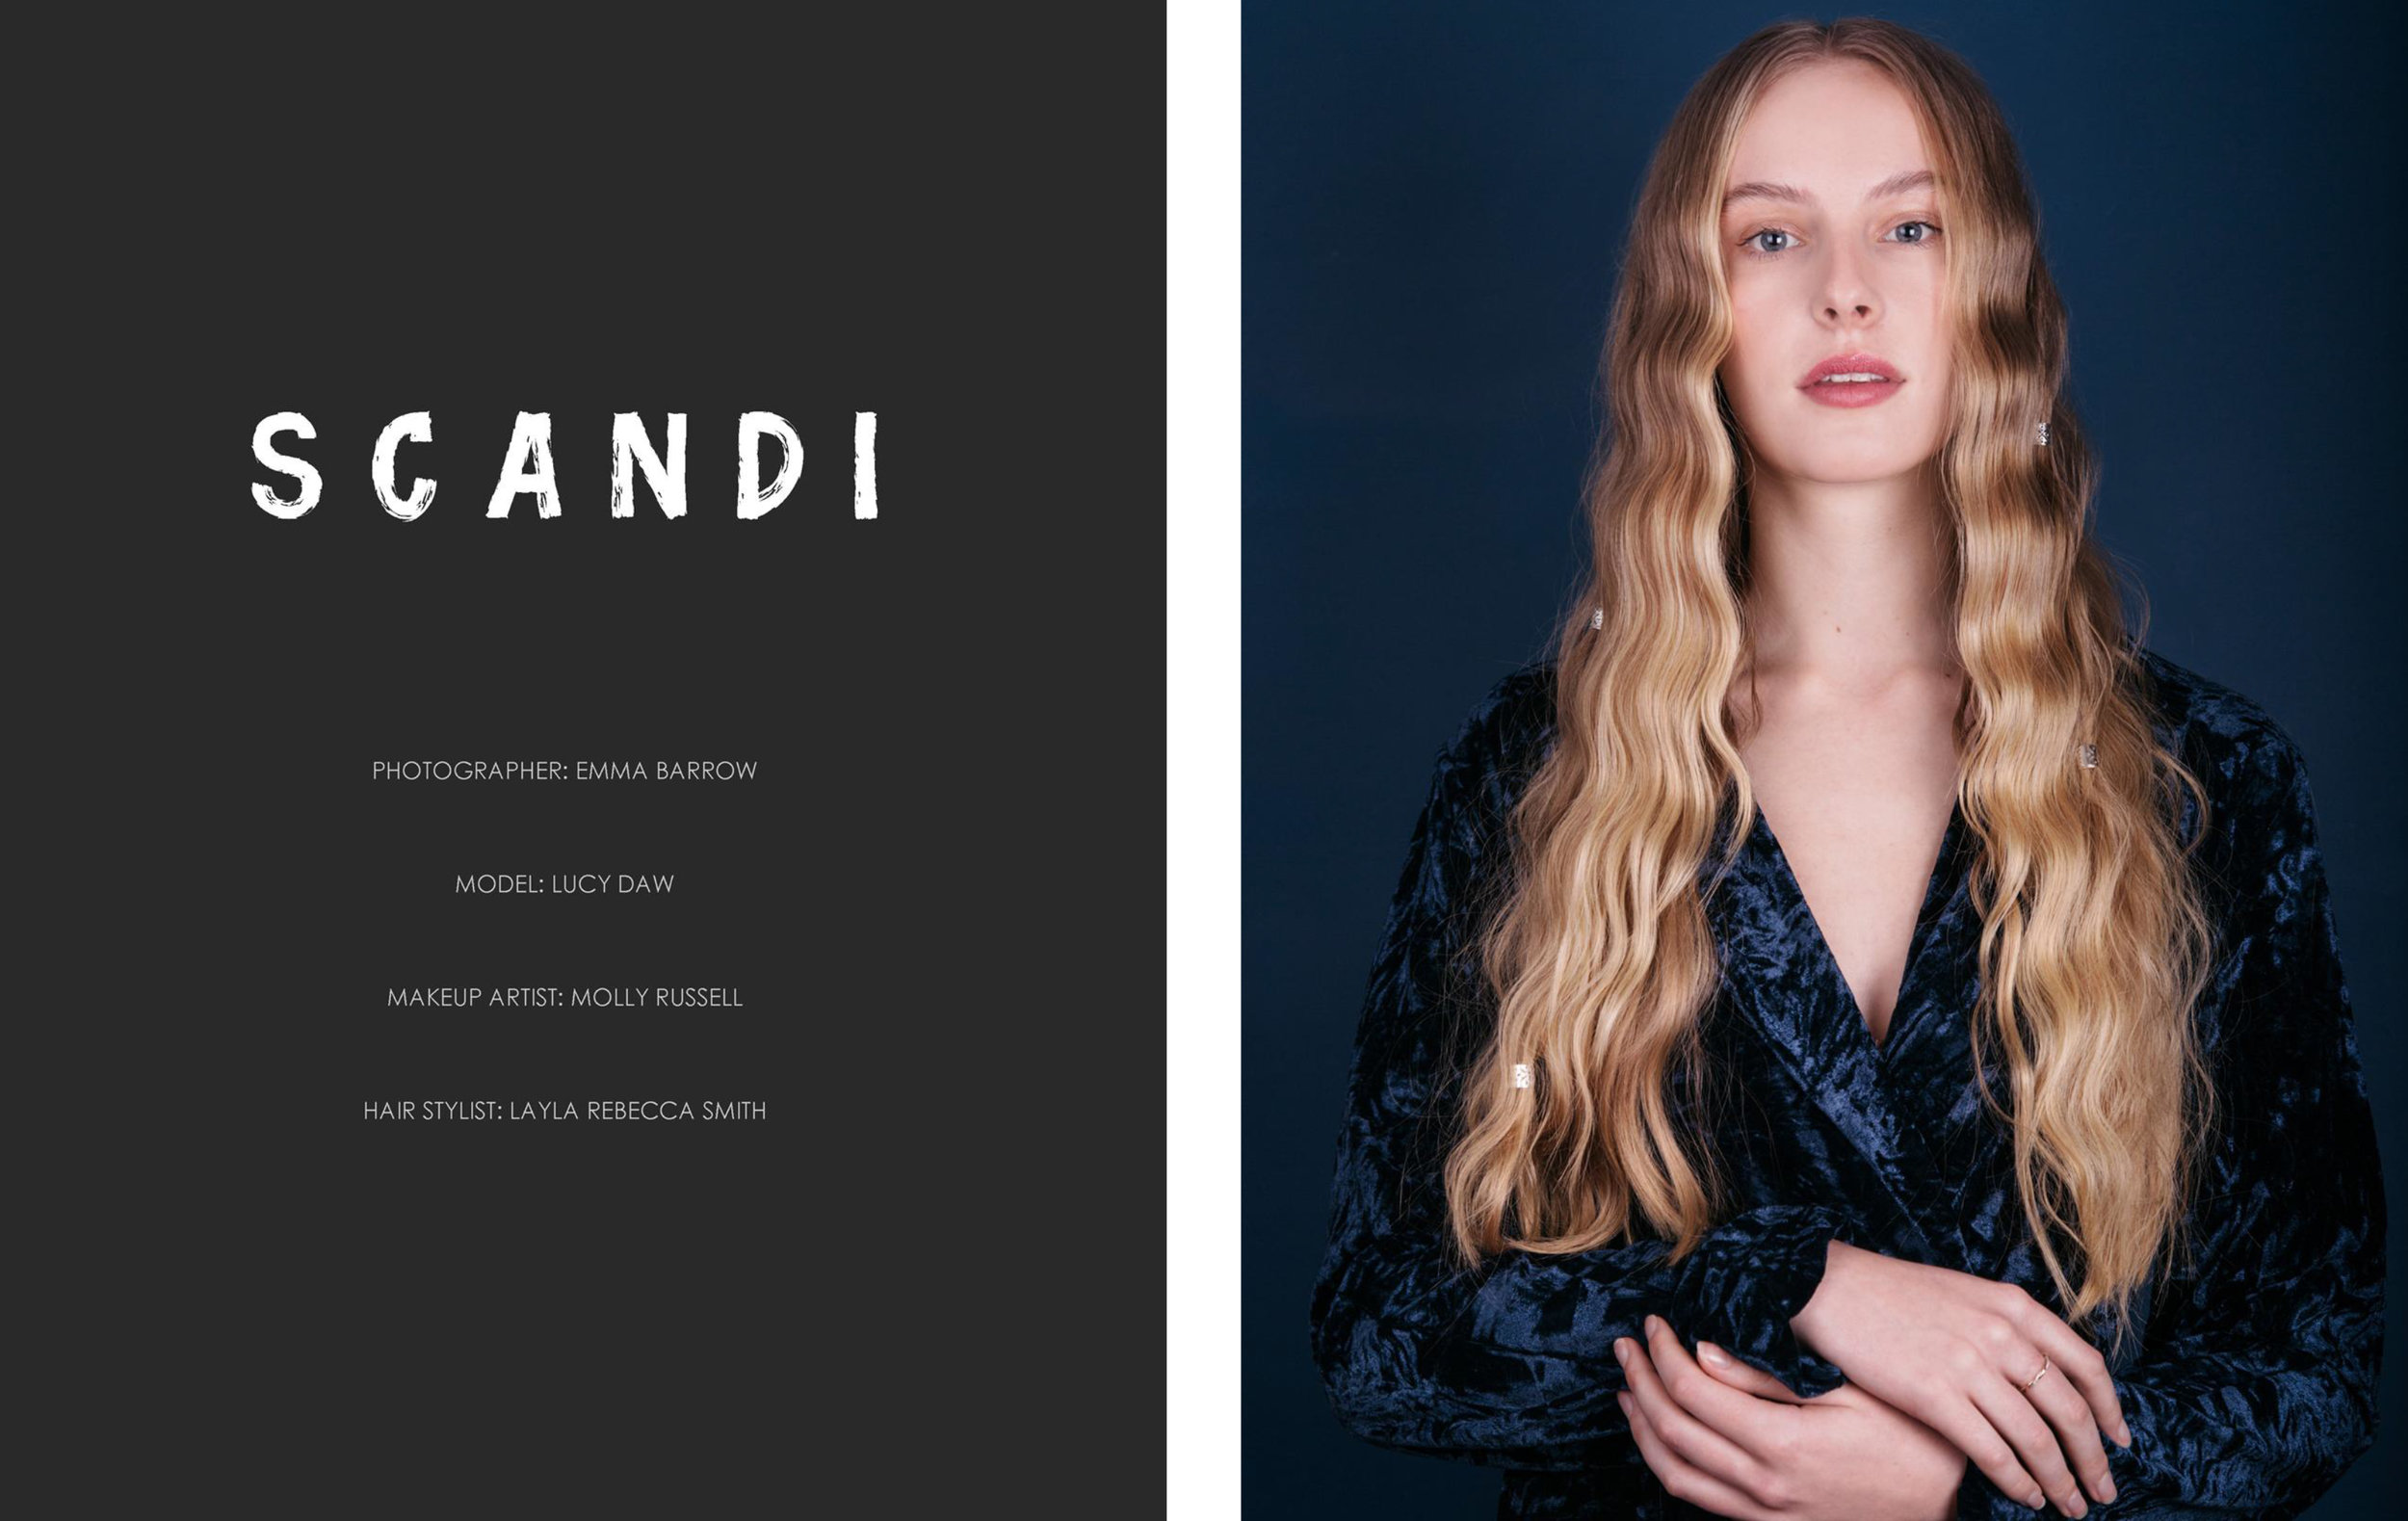 emma barrow fashion editorial photographer scandi